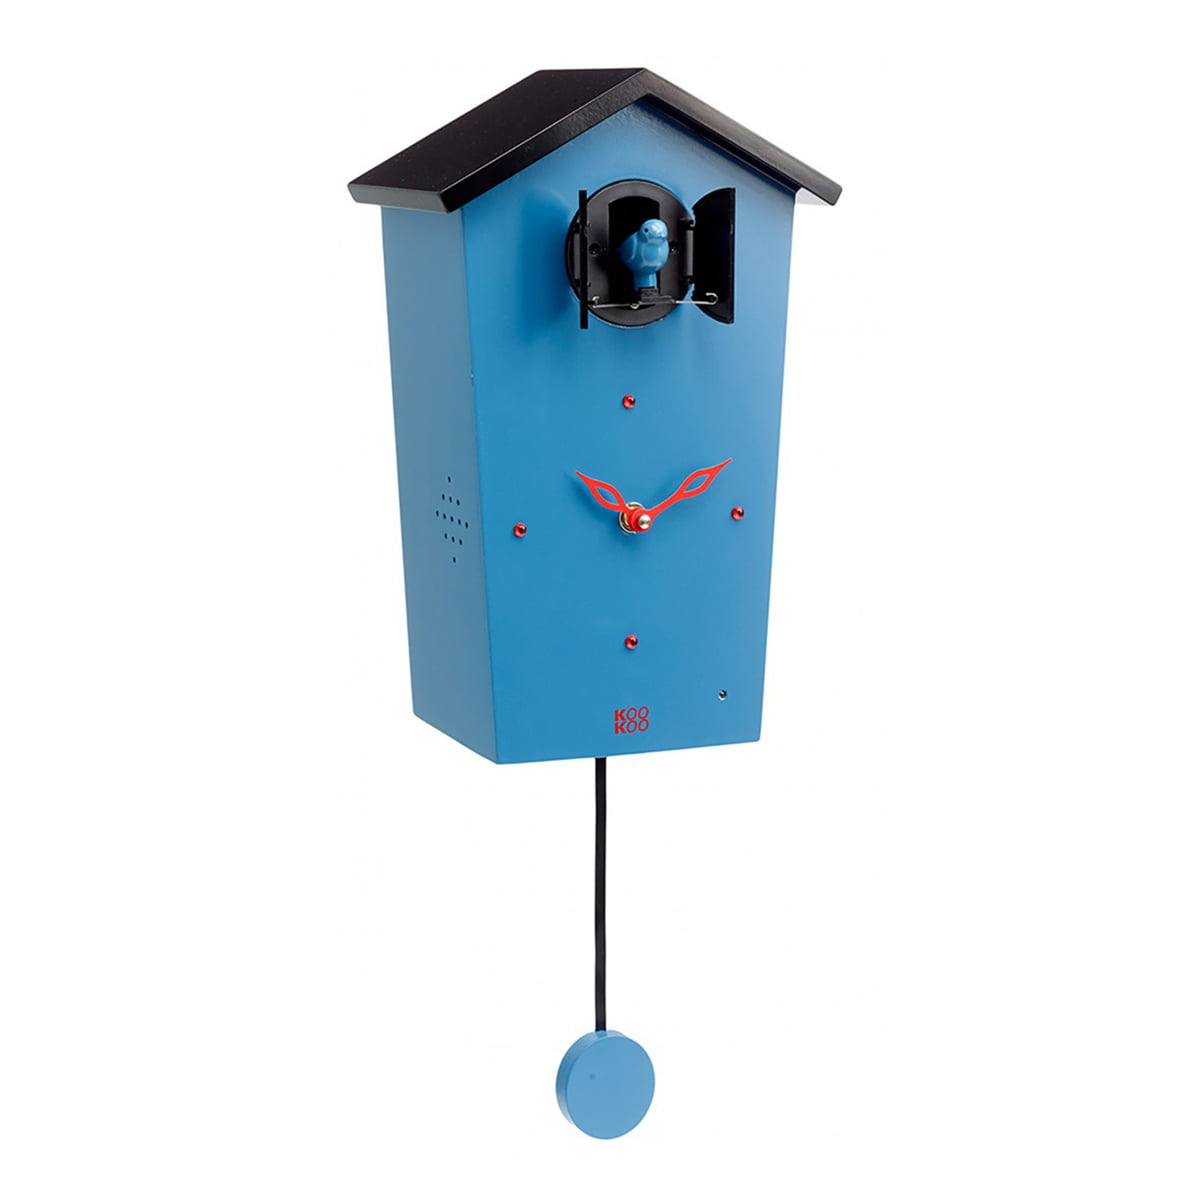 Groovy Kookoo Bird House Cuckoo Clock Blue Limited Edition Home Interior And Landscaping Ferensignezvosmurscom